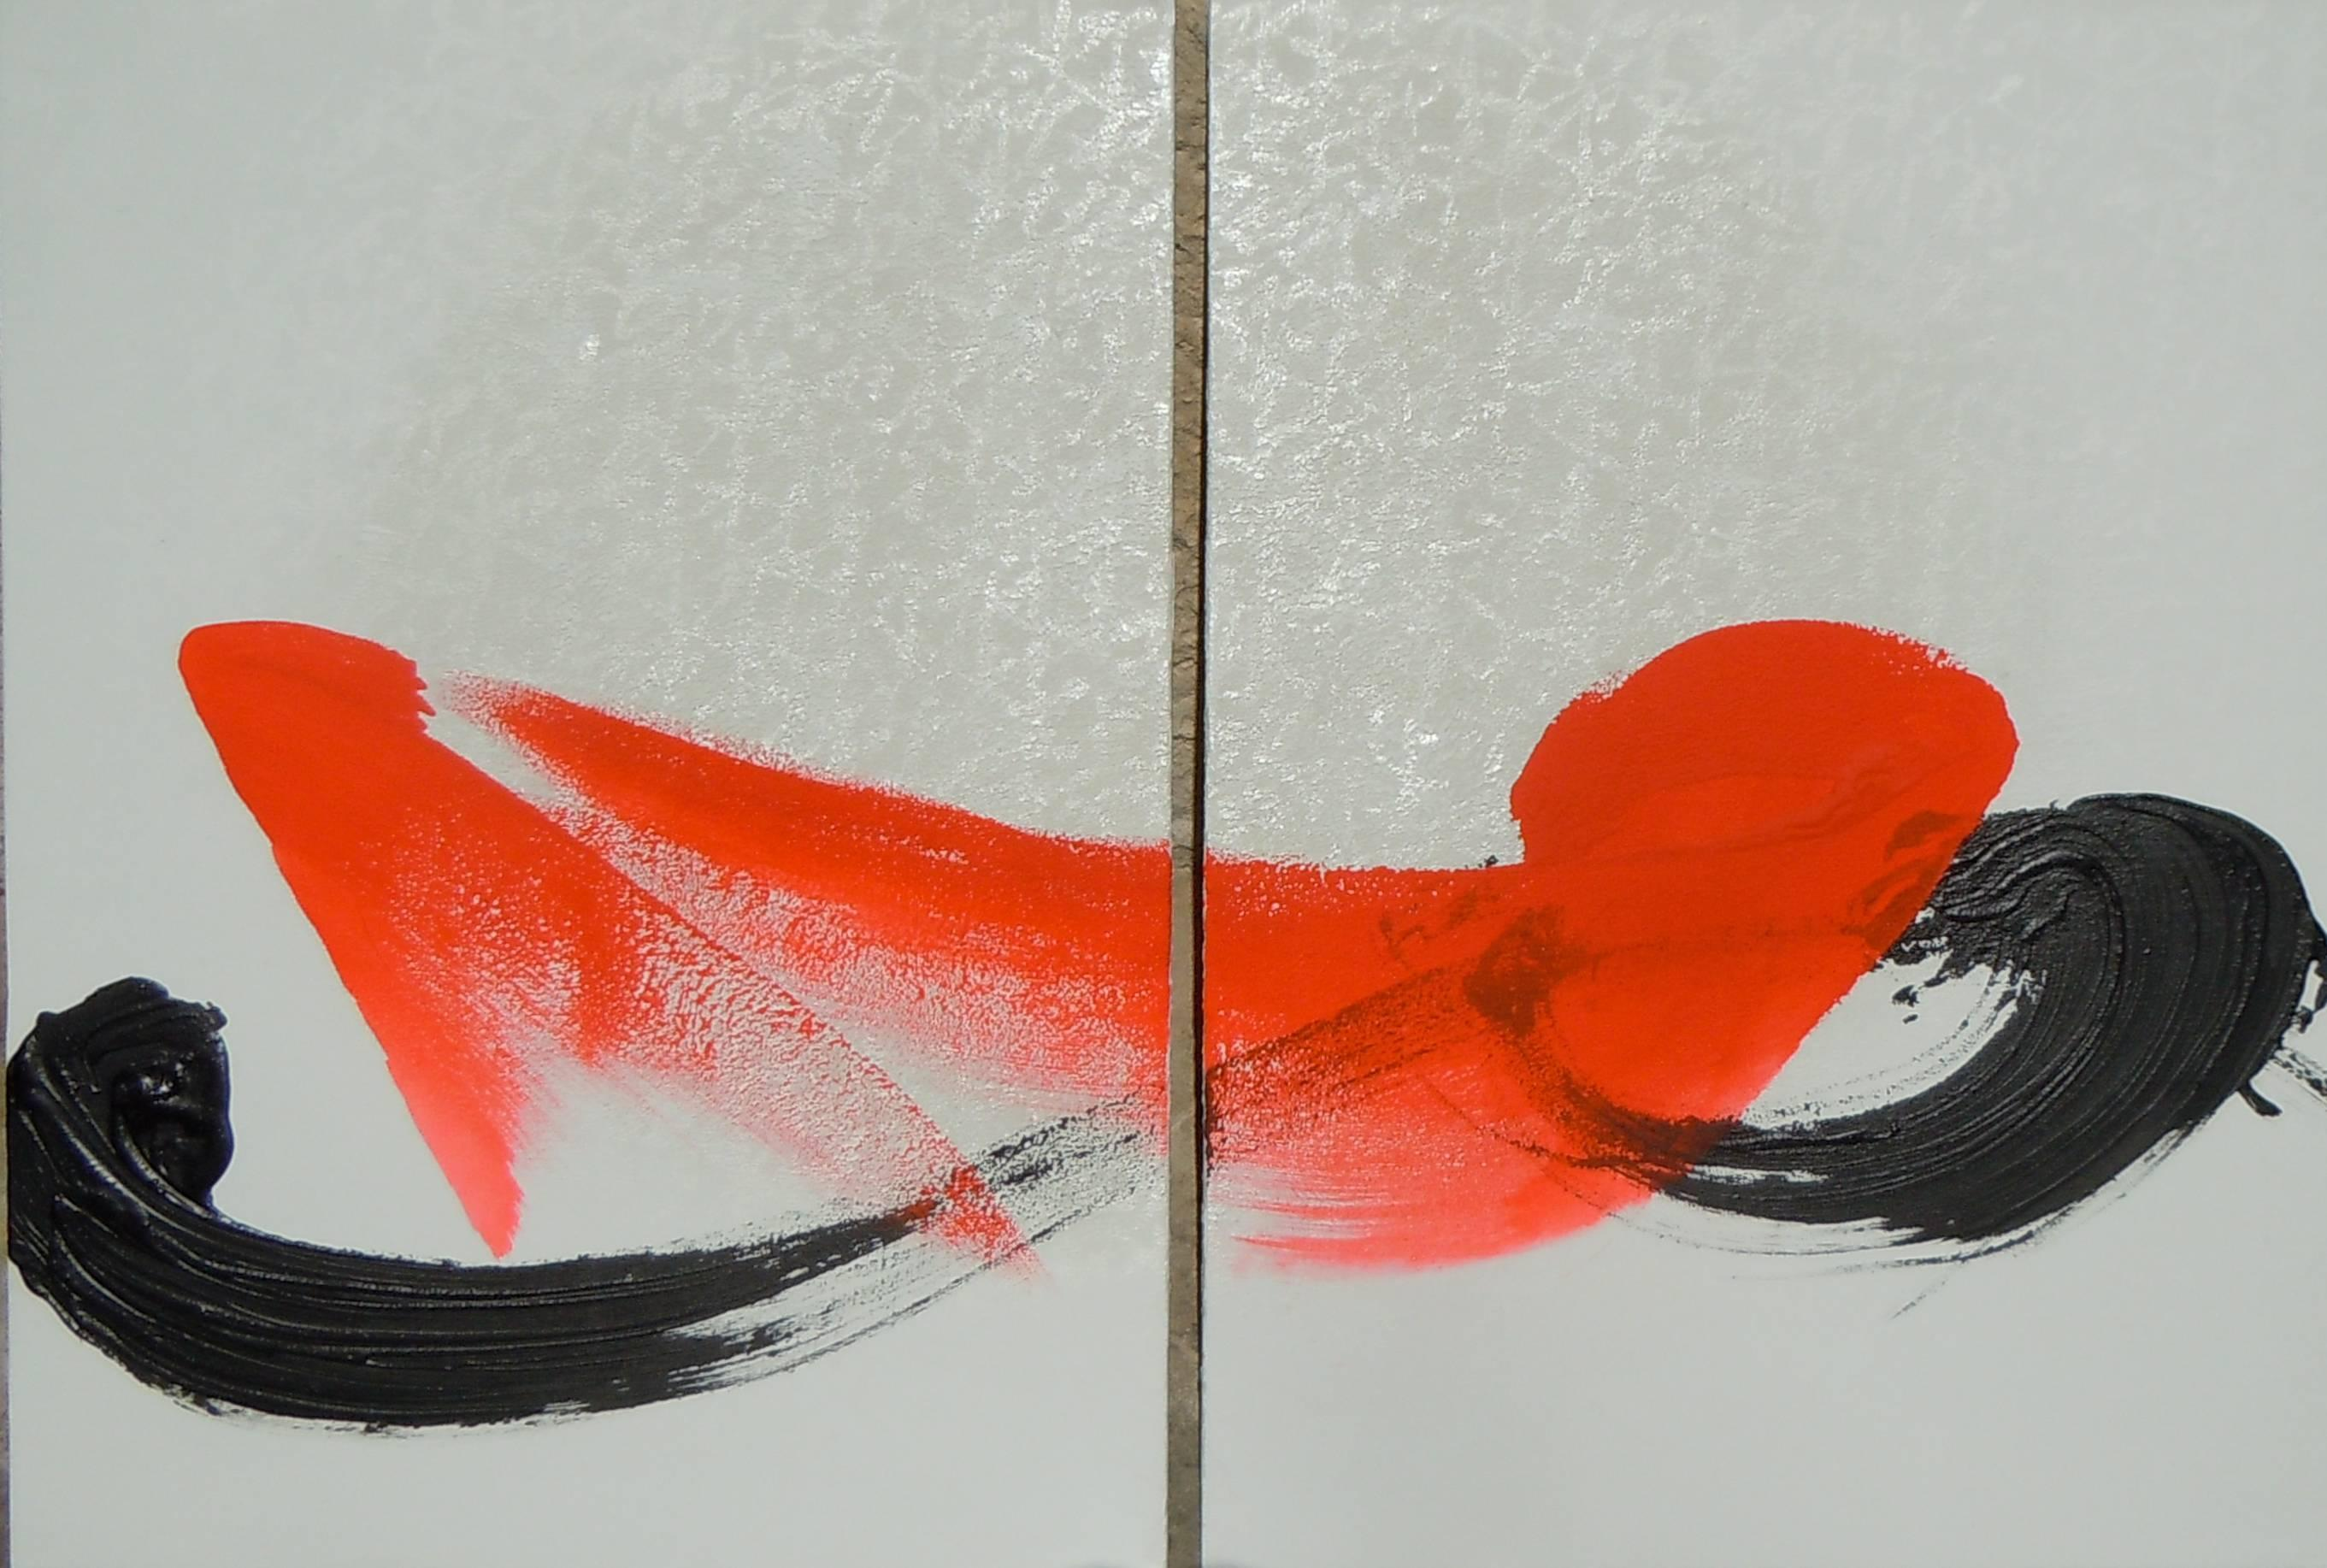 TN 647 D (Abstract Japanese Calligraphy)